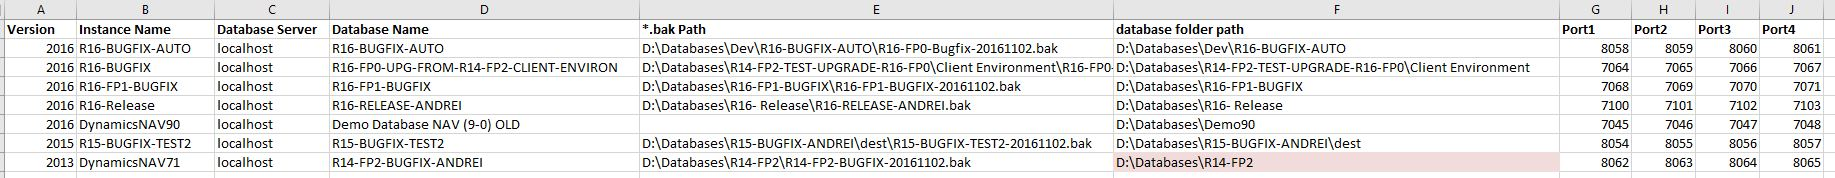 nav-server-instances-in-excel-file